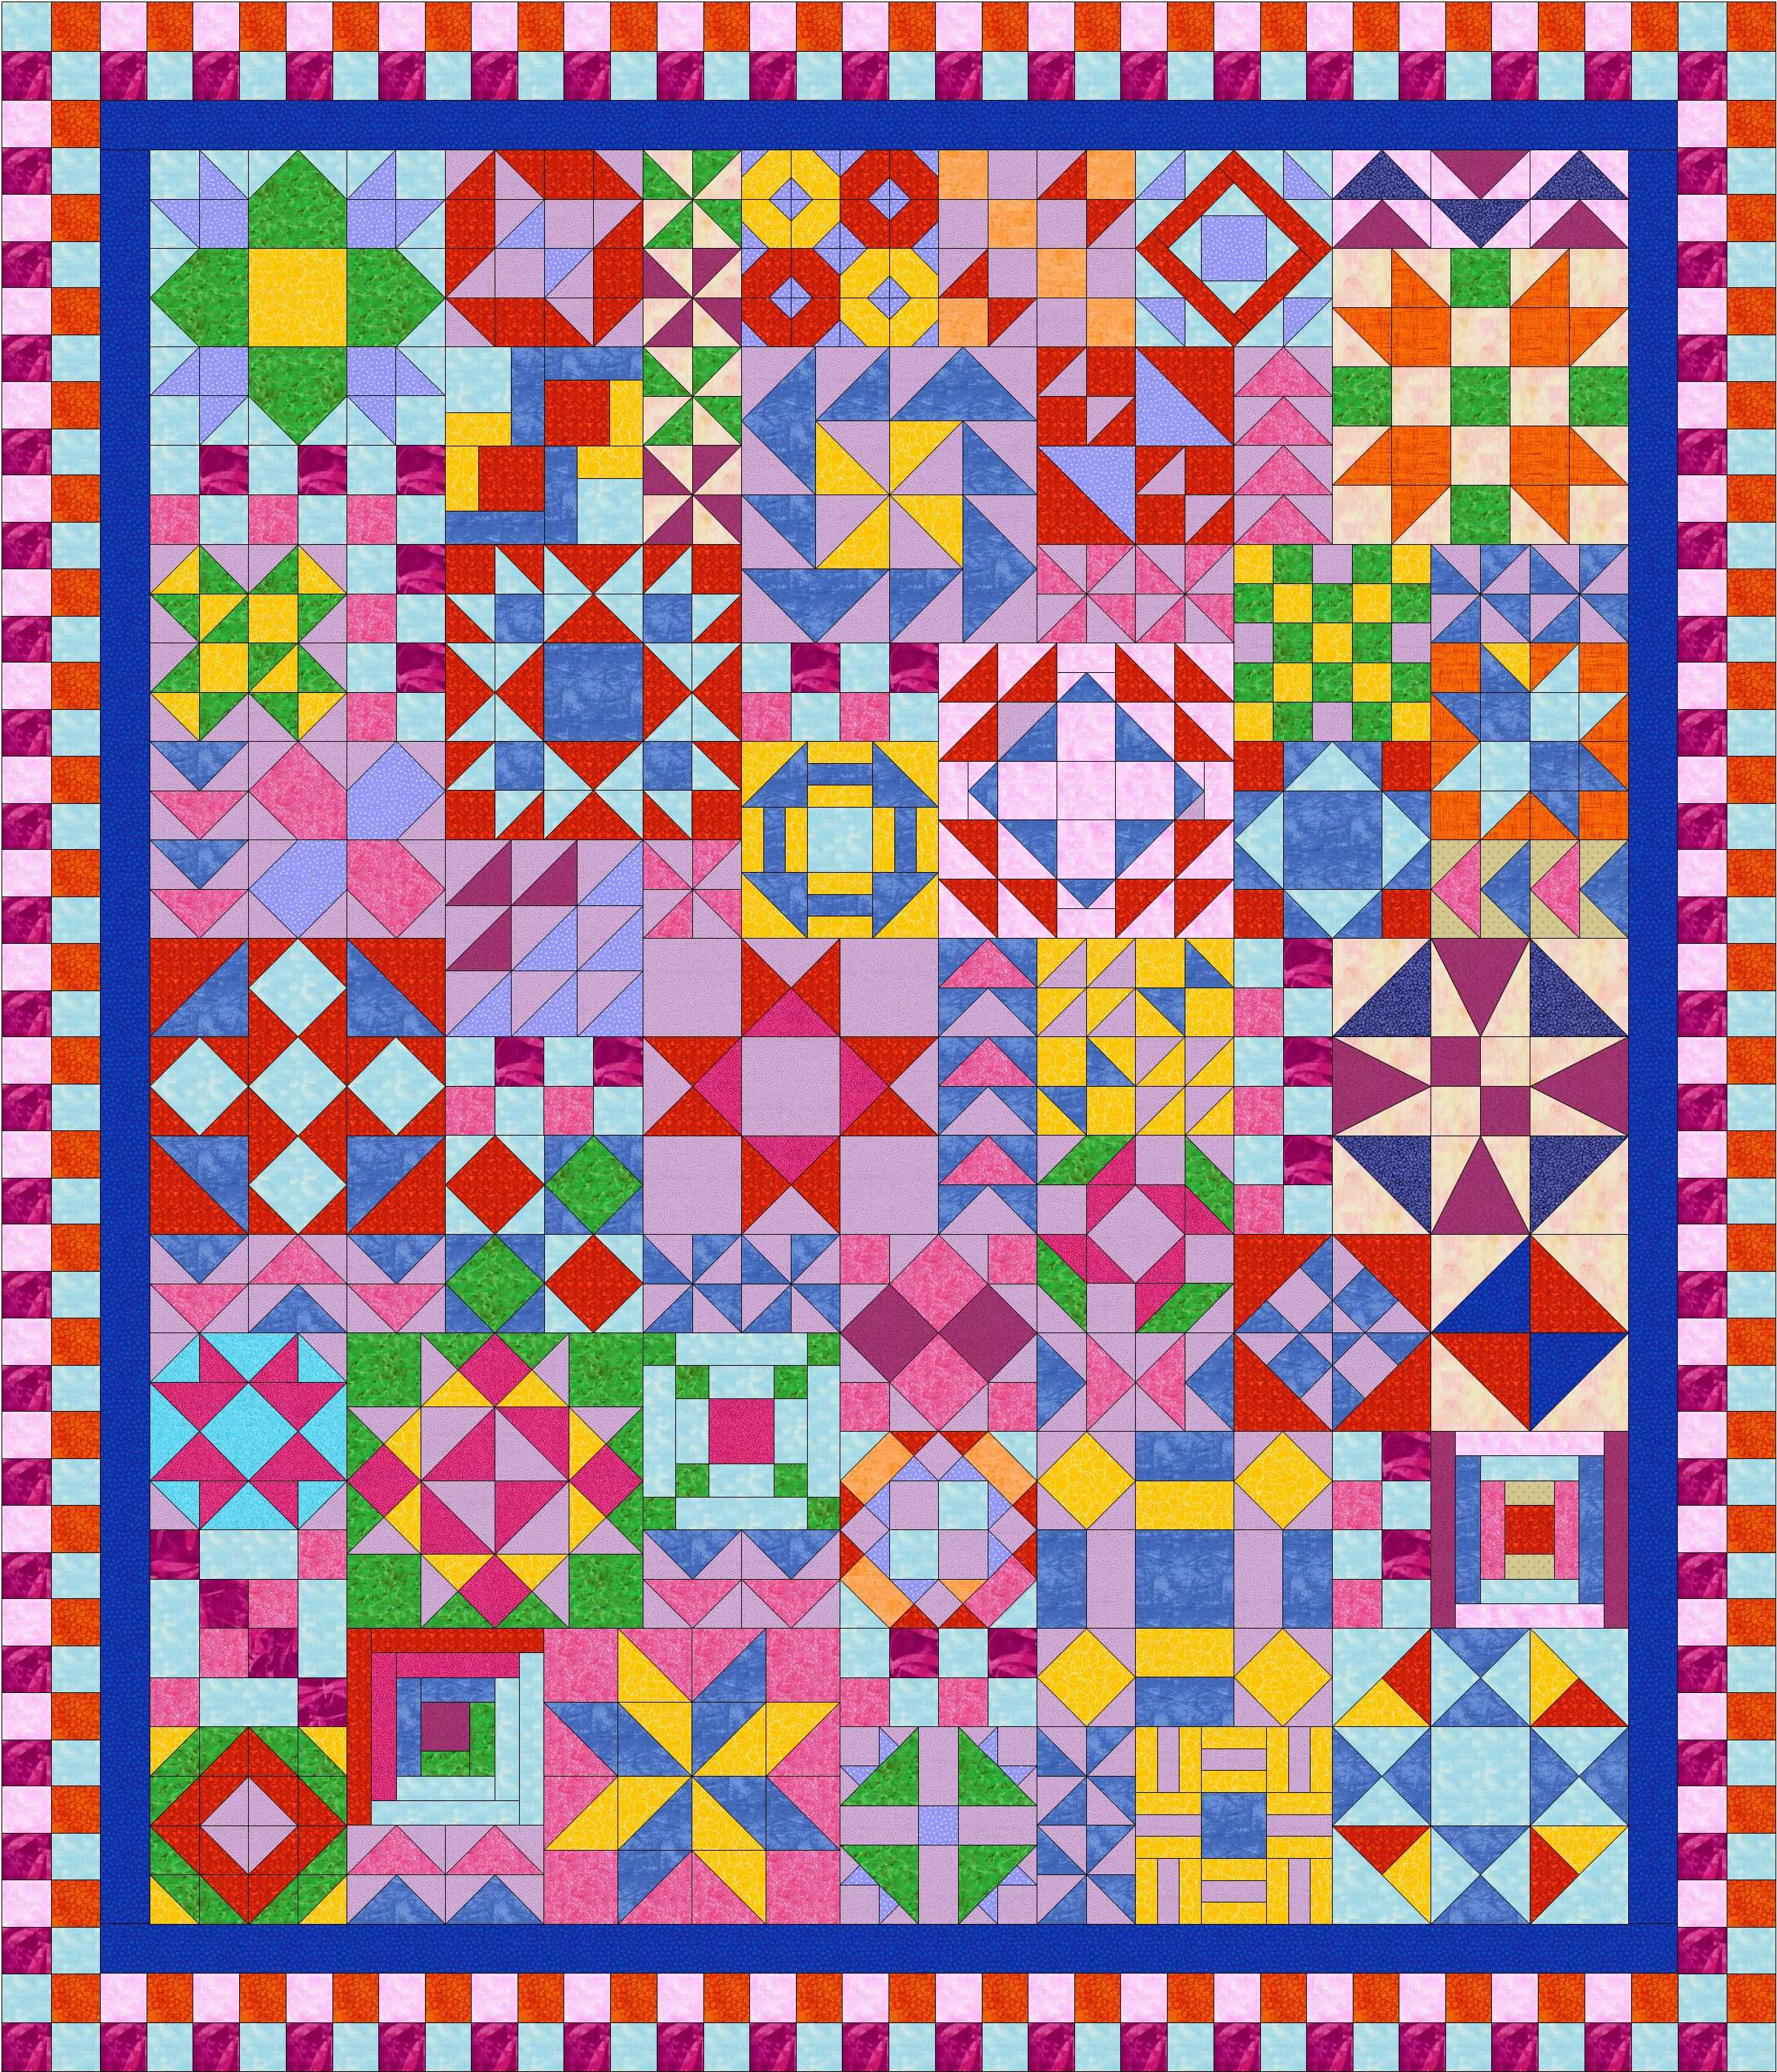 Biblical Blocks - Free Quilt Block Patterns